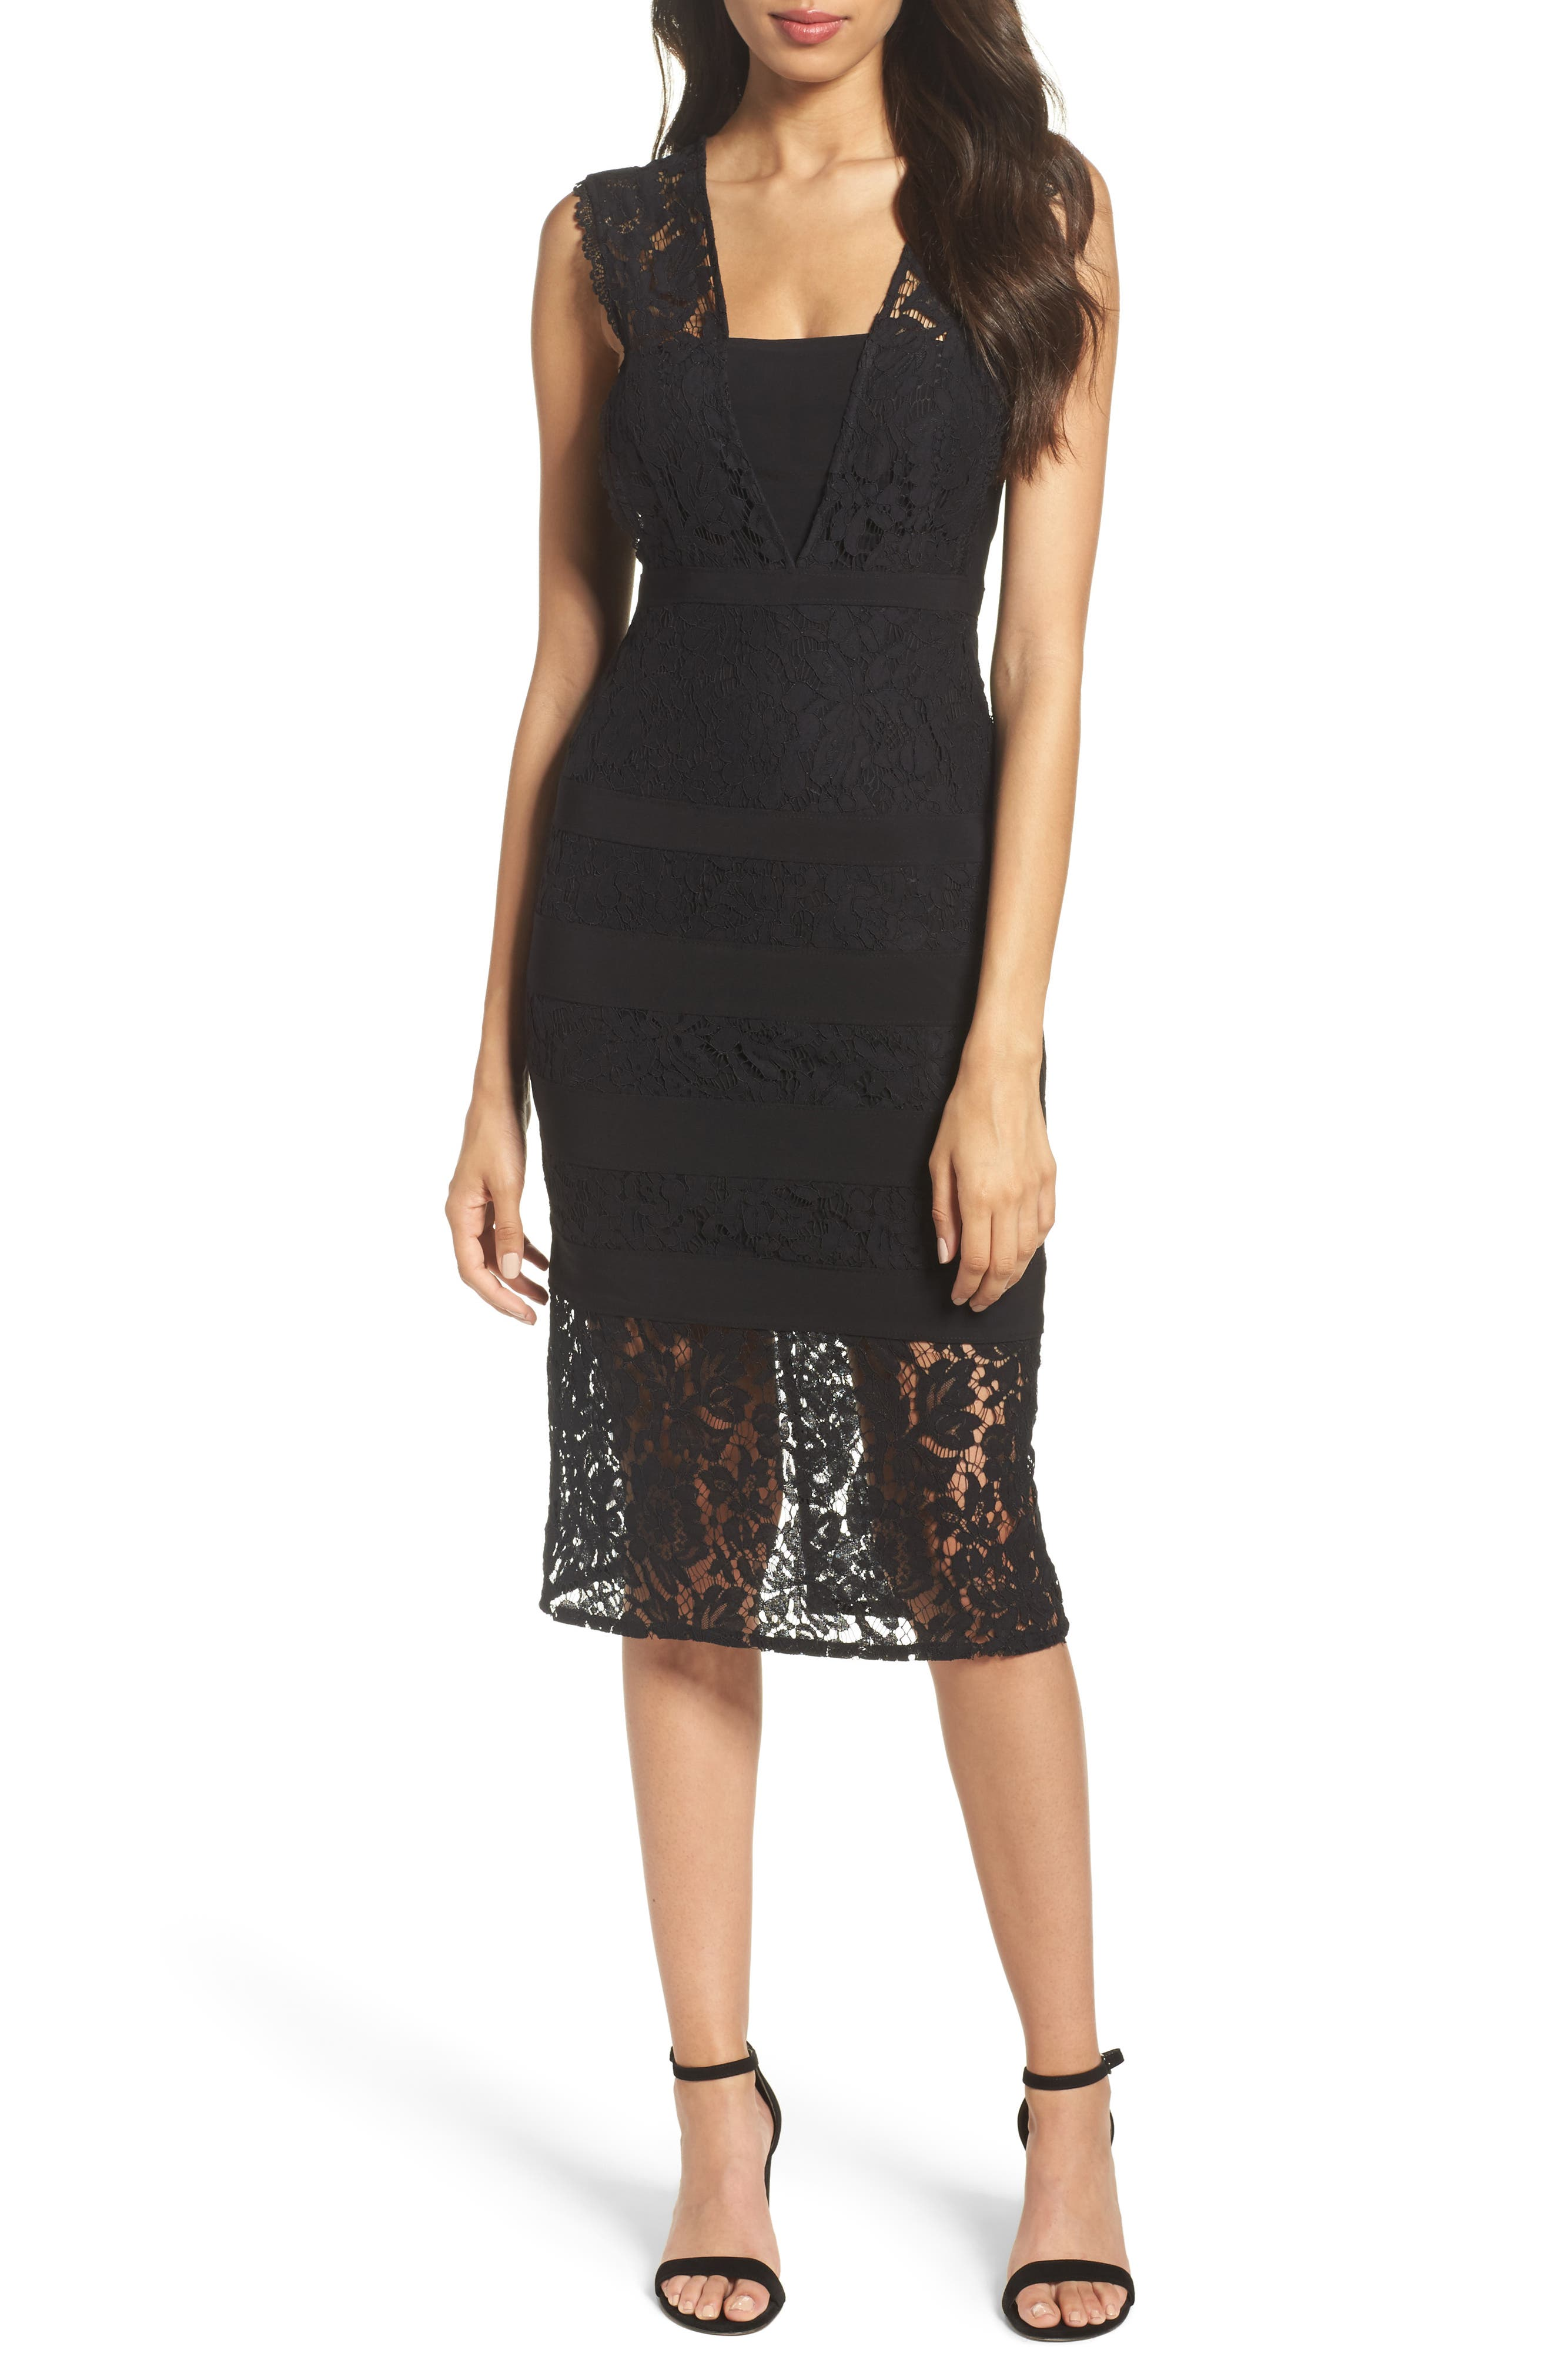 Alternate Image 1 Selected - Adrianna Papell Cynthia Lace Sheath Dress